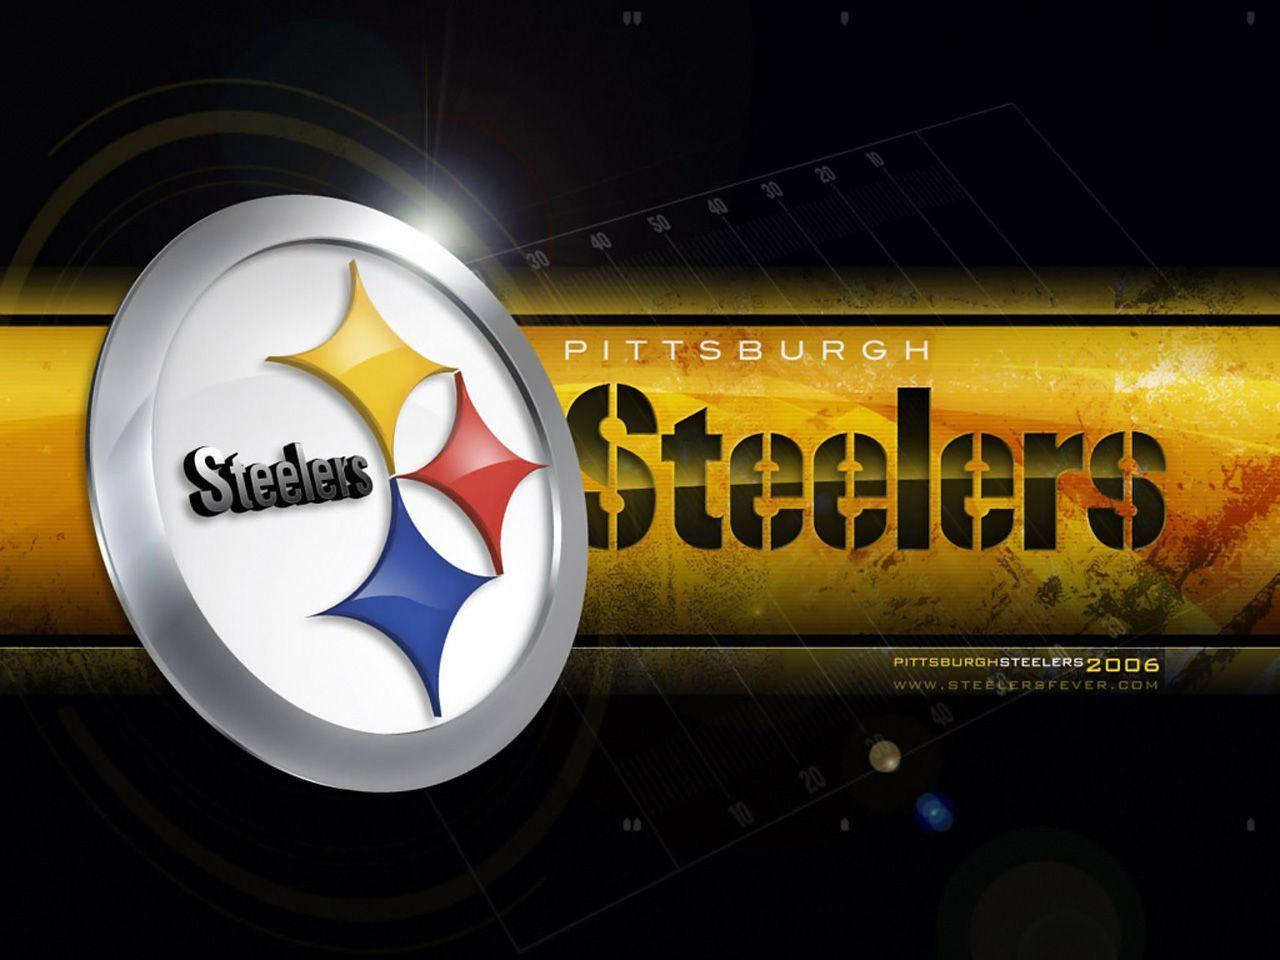 Pittsburgh Steelers wallpapers | Pittsburgh Steelers background. Download